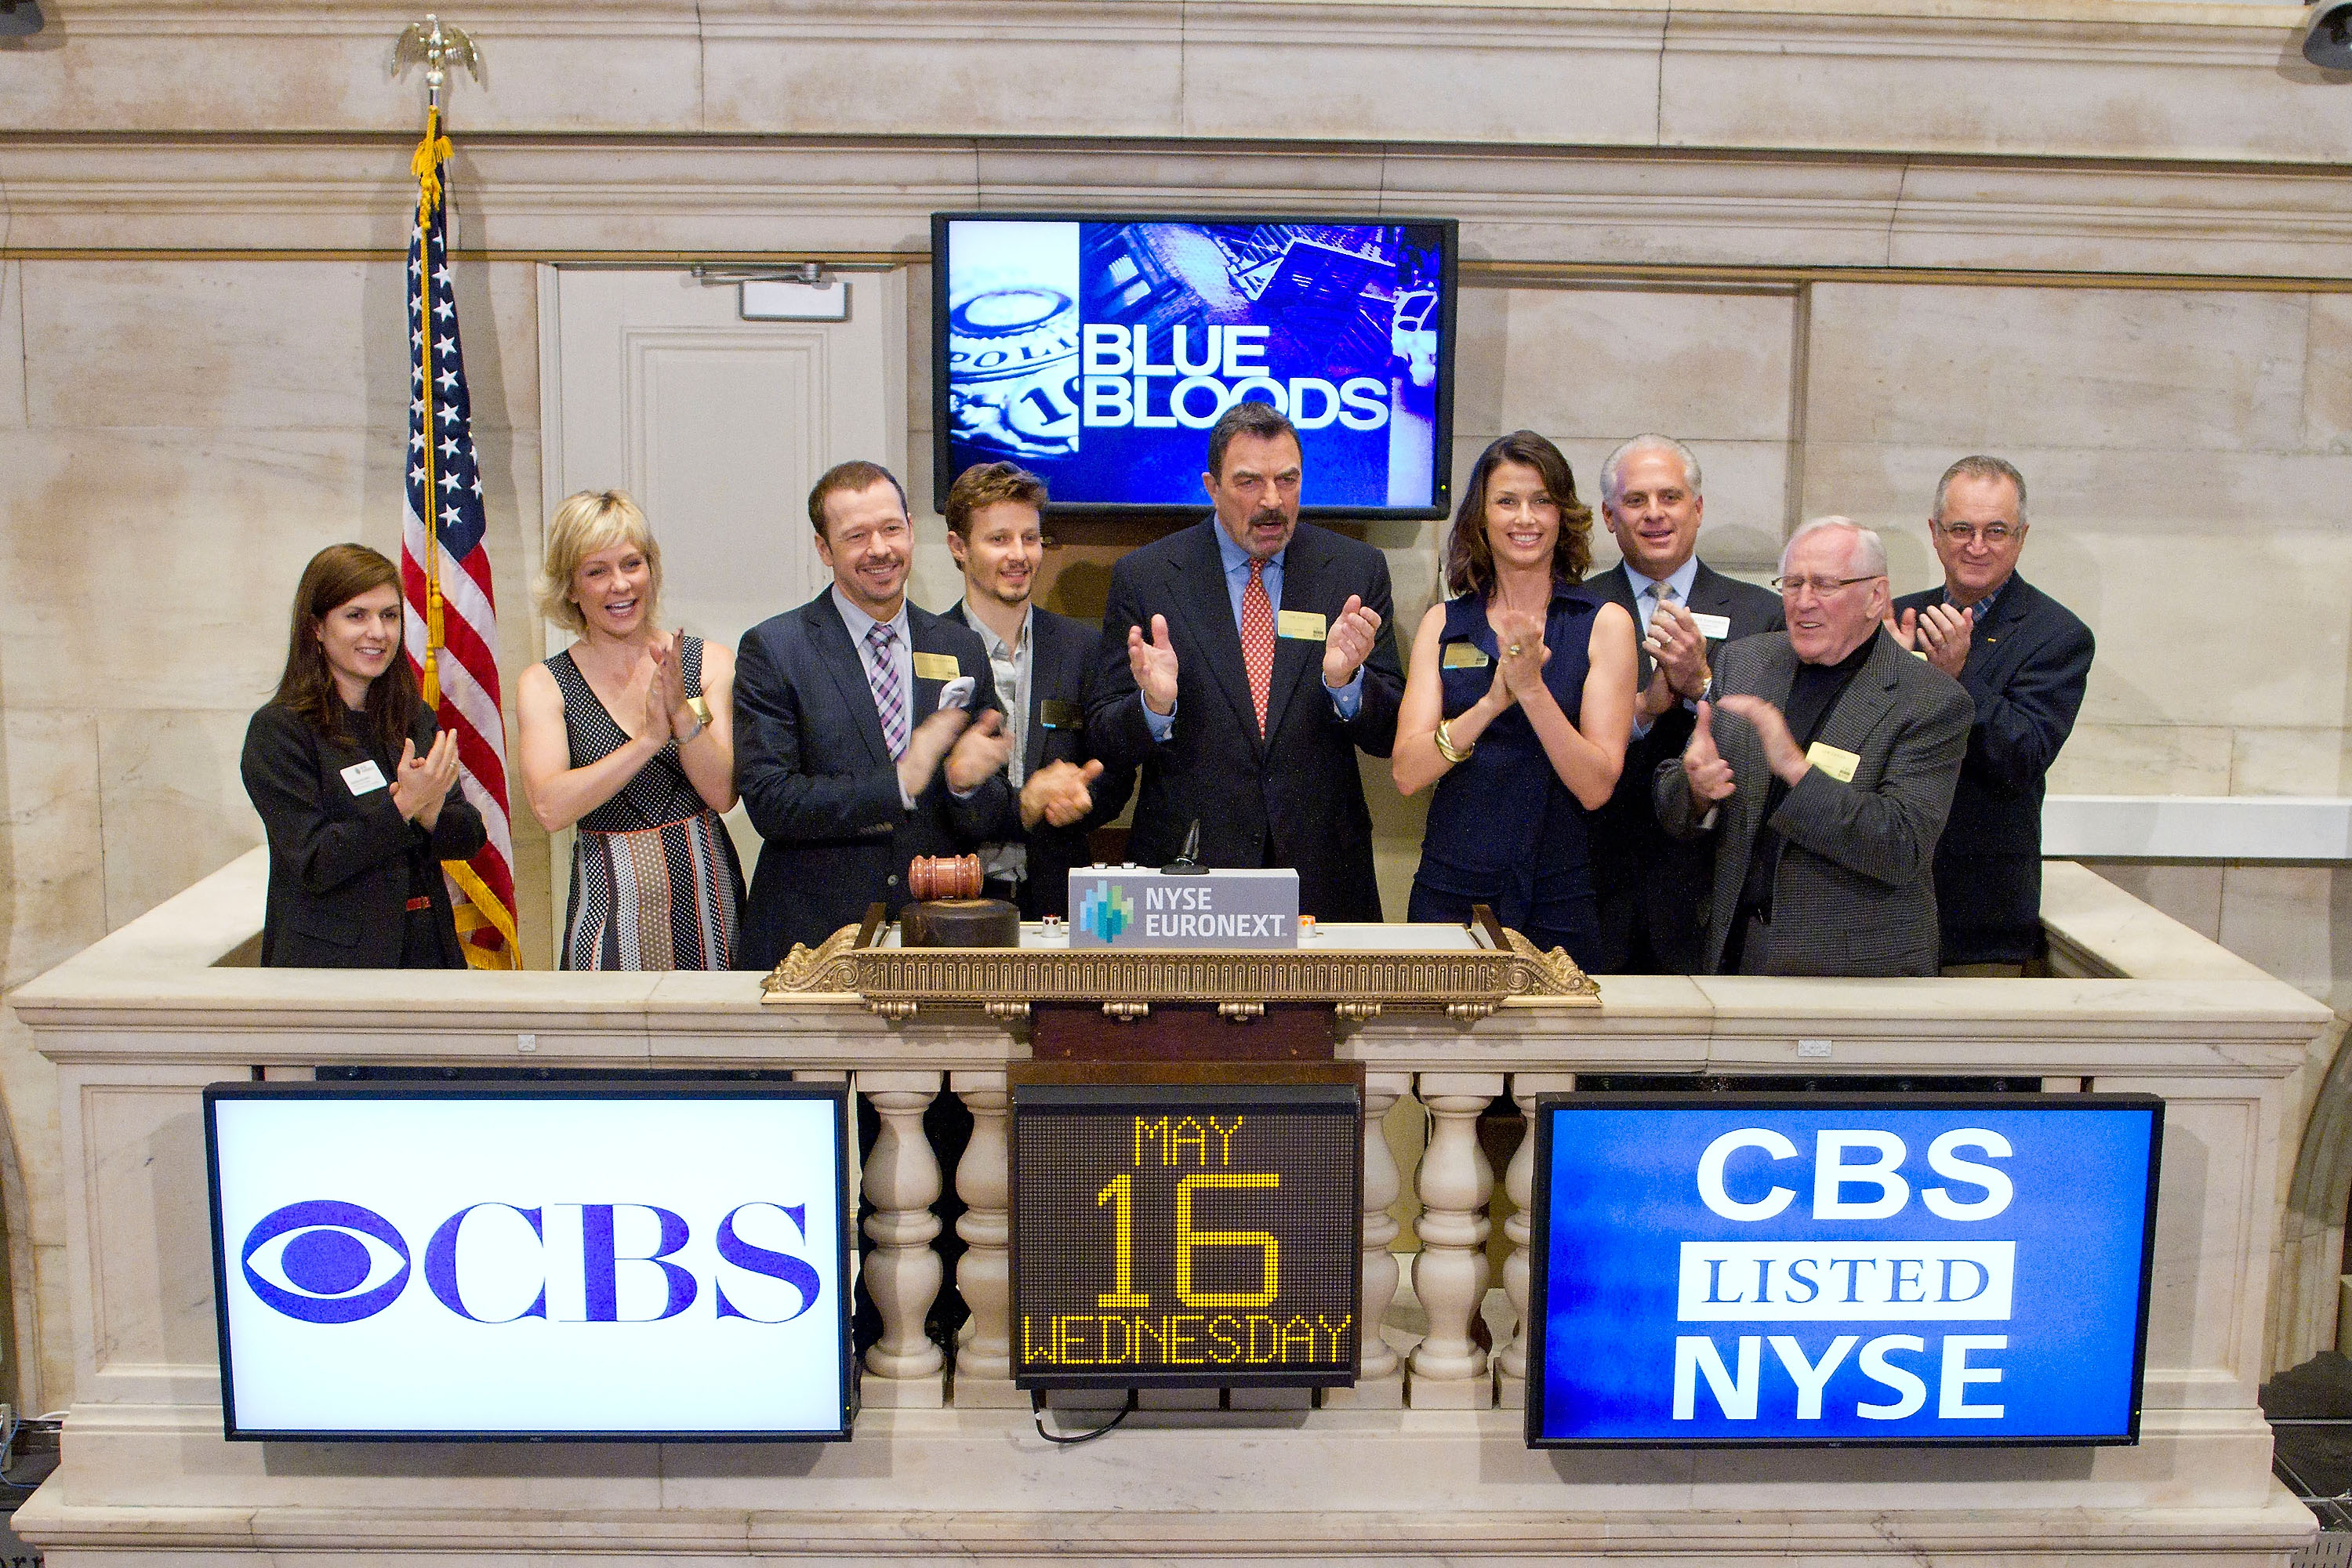 NYSE & Blue Bloods